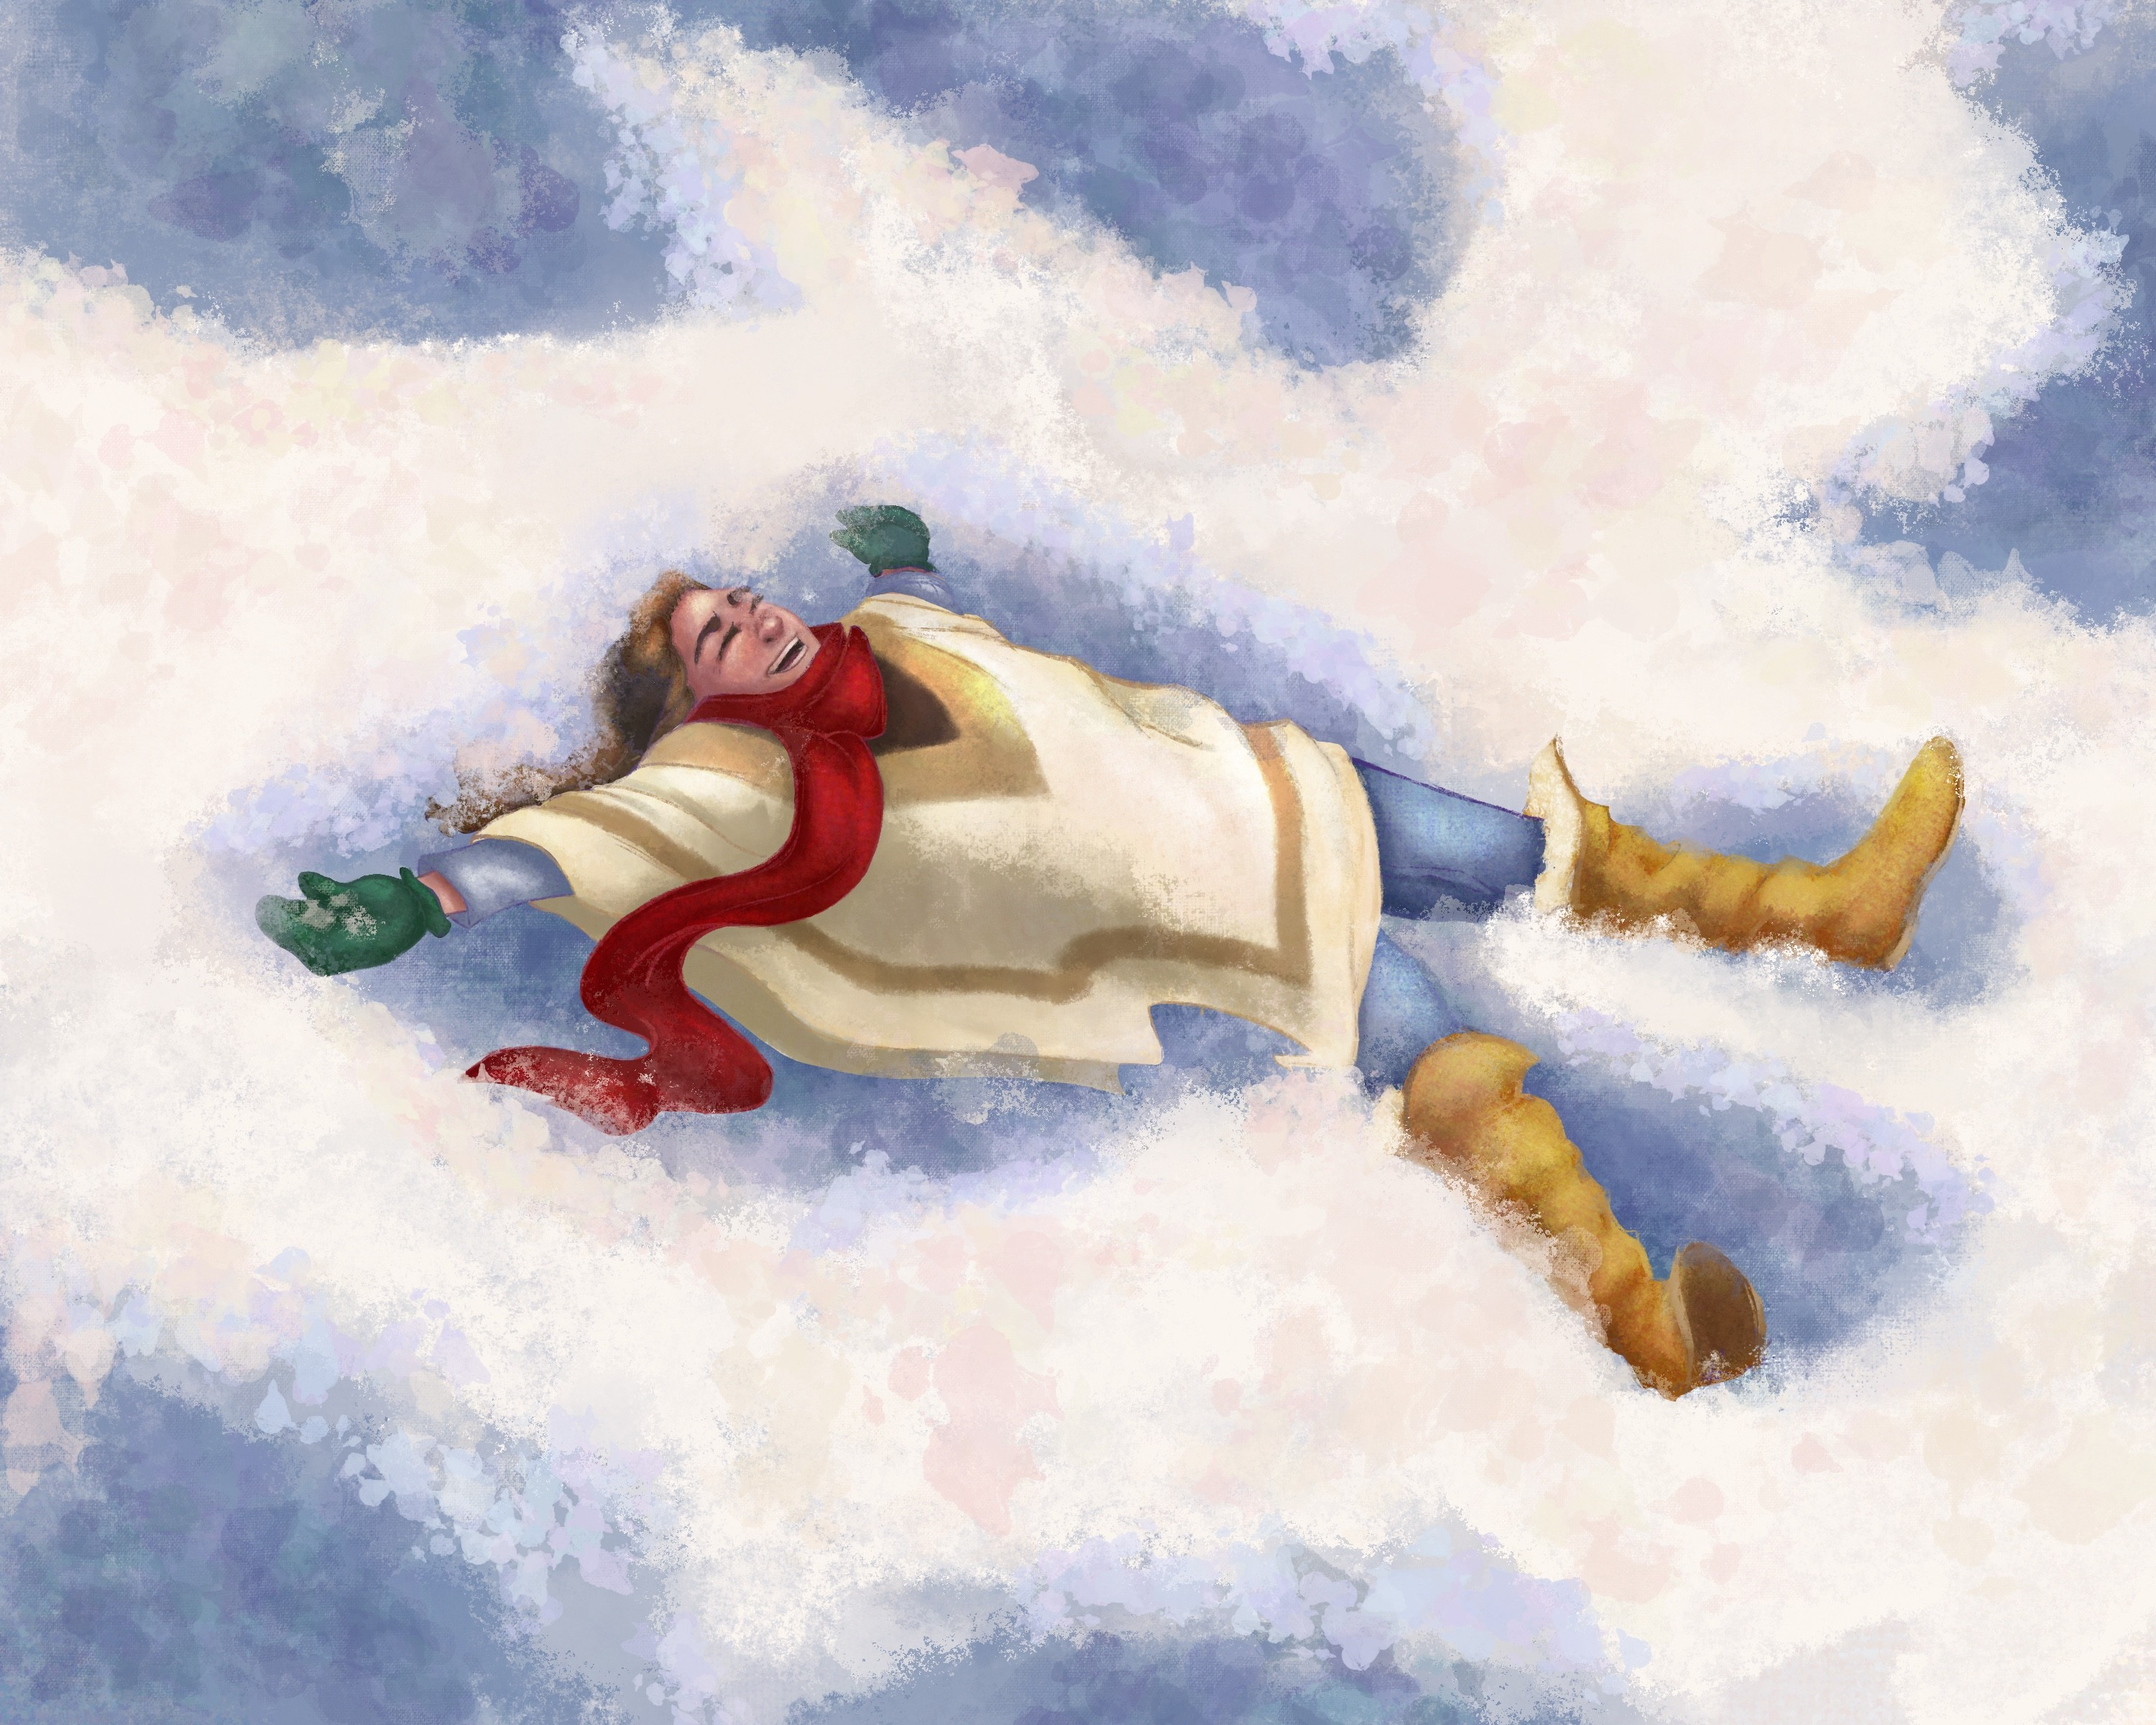 An illustration of a girl making snow angels.